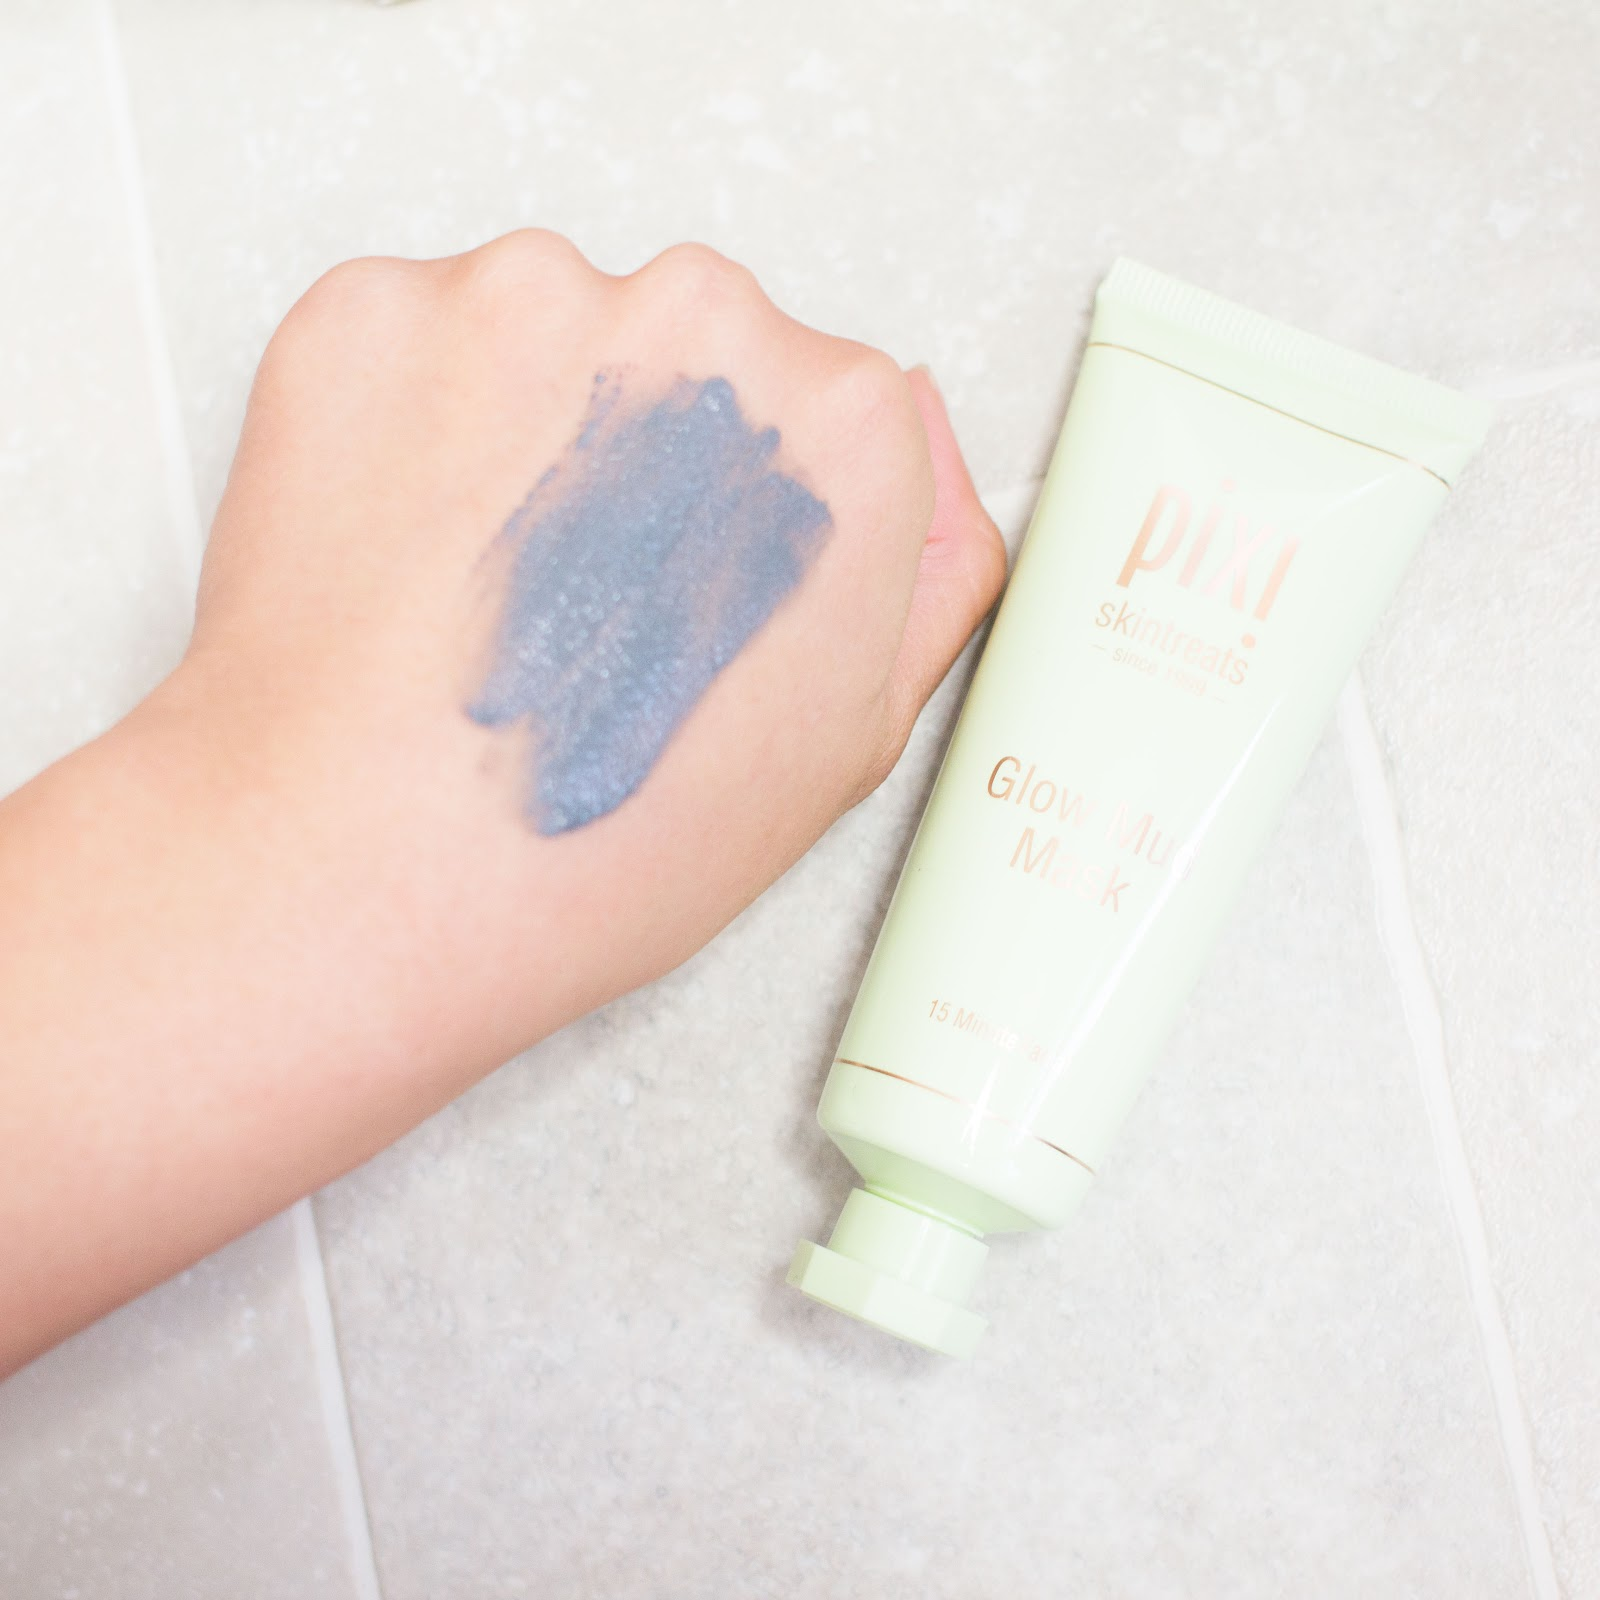 Pixi Glow Mud Mask Review